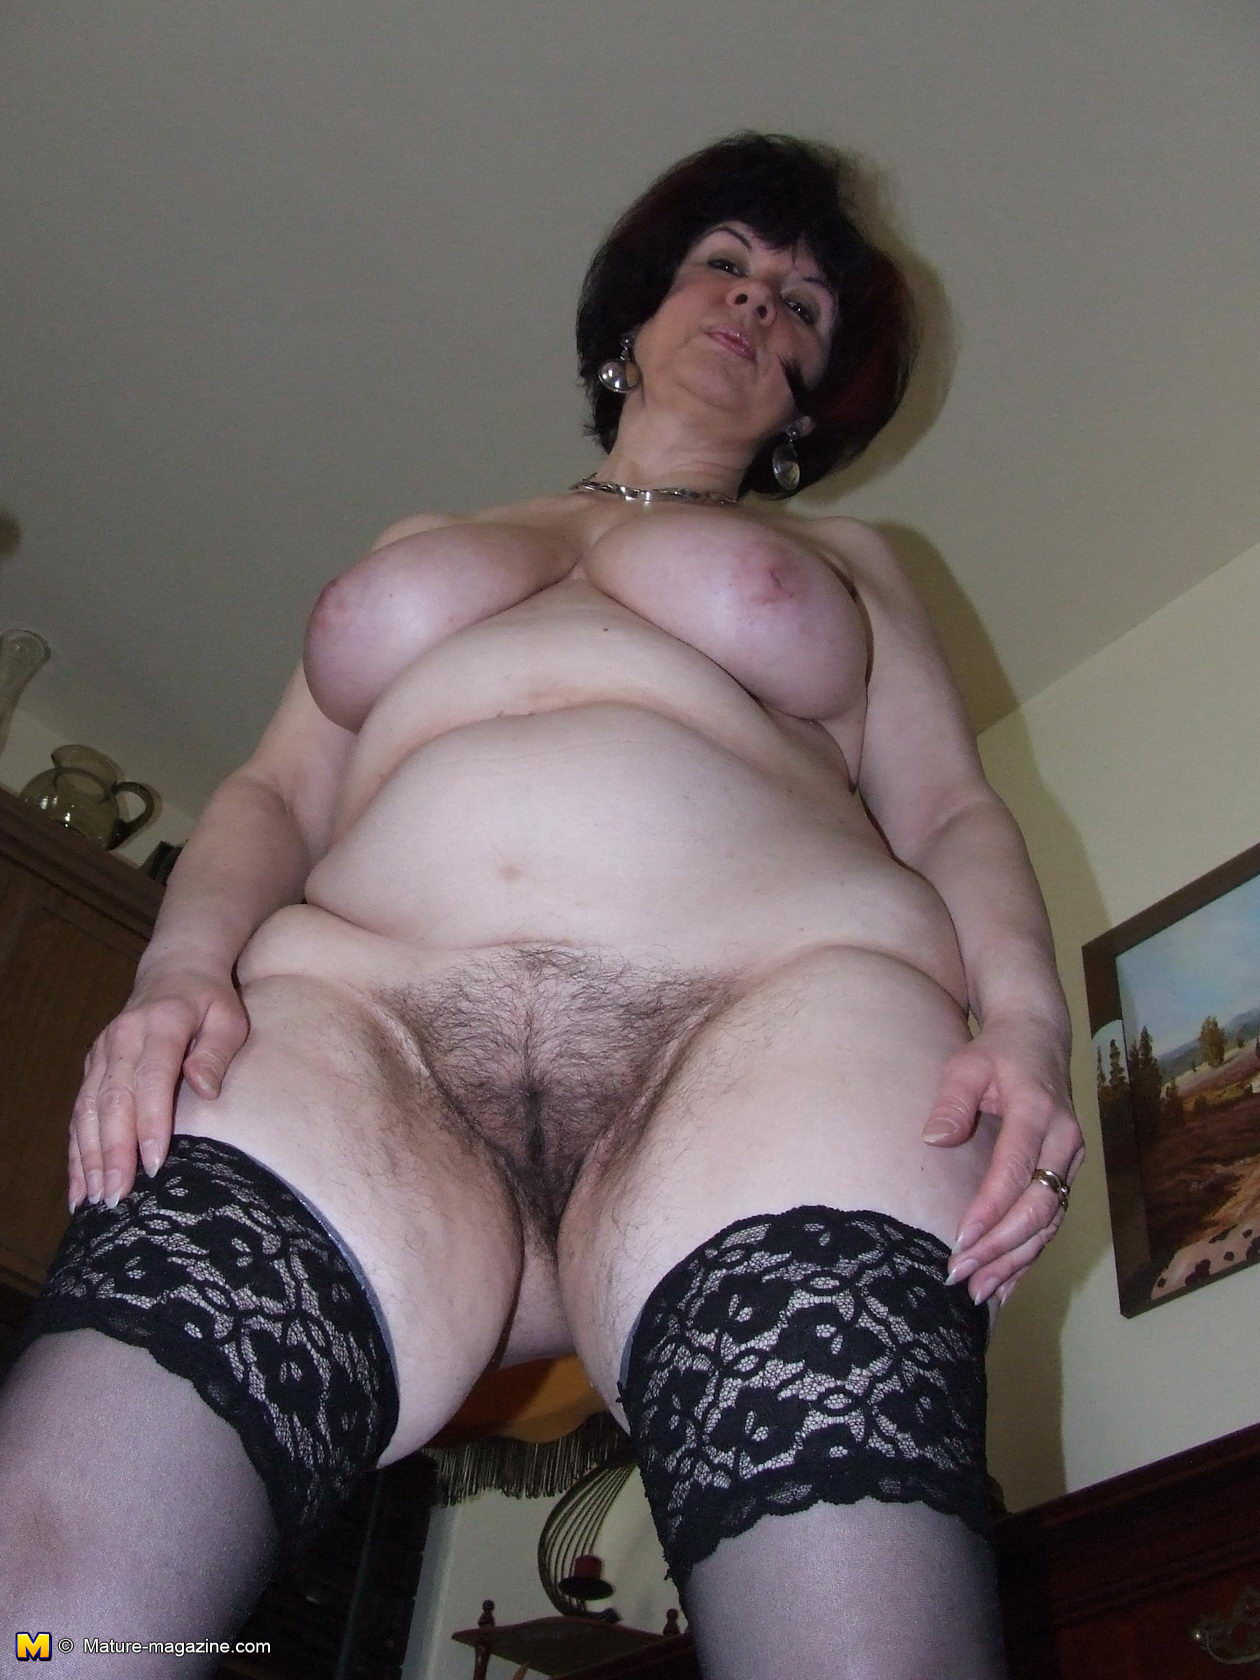 hairy housewife getting naughty in her living room - grannypornpics